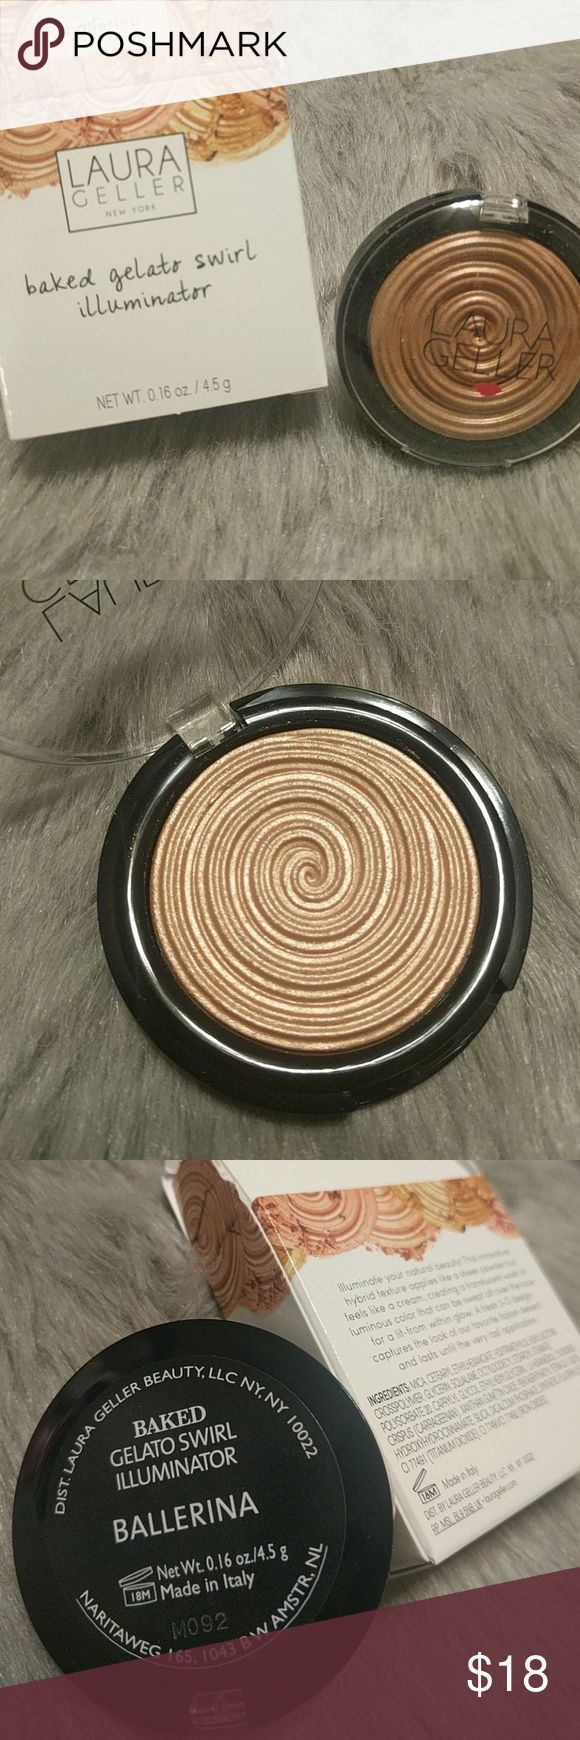 NIB Laura Geller Ballerina Highlighter Brand new in box. Stunning and bold highlighter. 100% authentic. This is the full size, retails for $26.  All purchases from me come with free additional samples.  Bundle with my other listings for discount and shipping deal. laura geller Makeup Luminizer